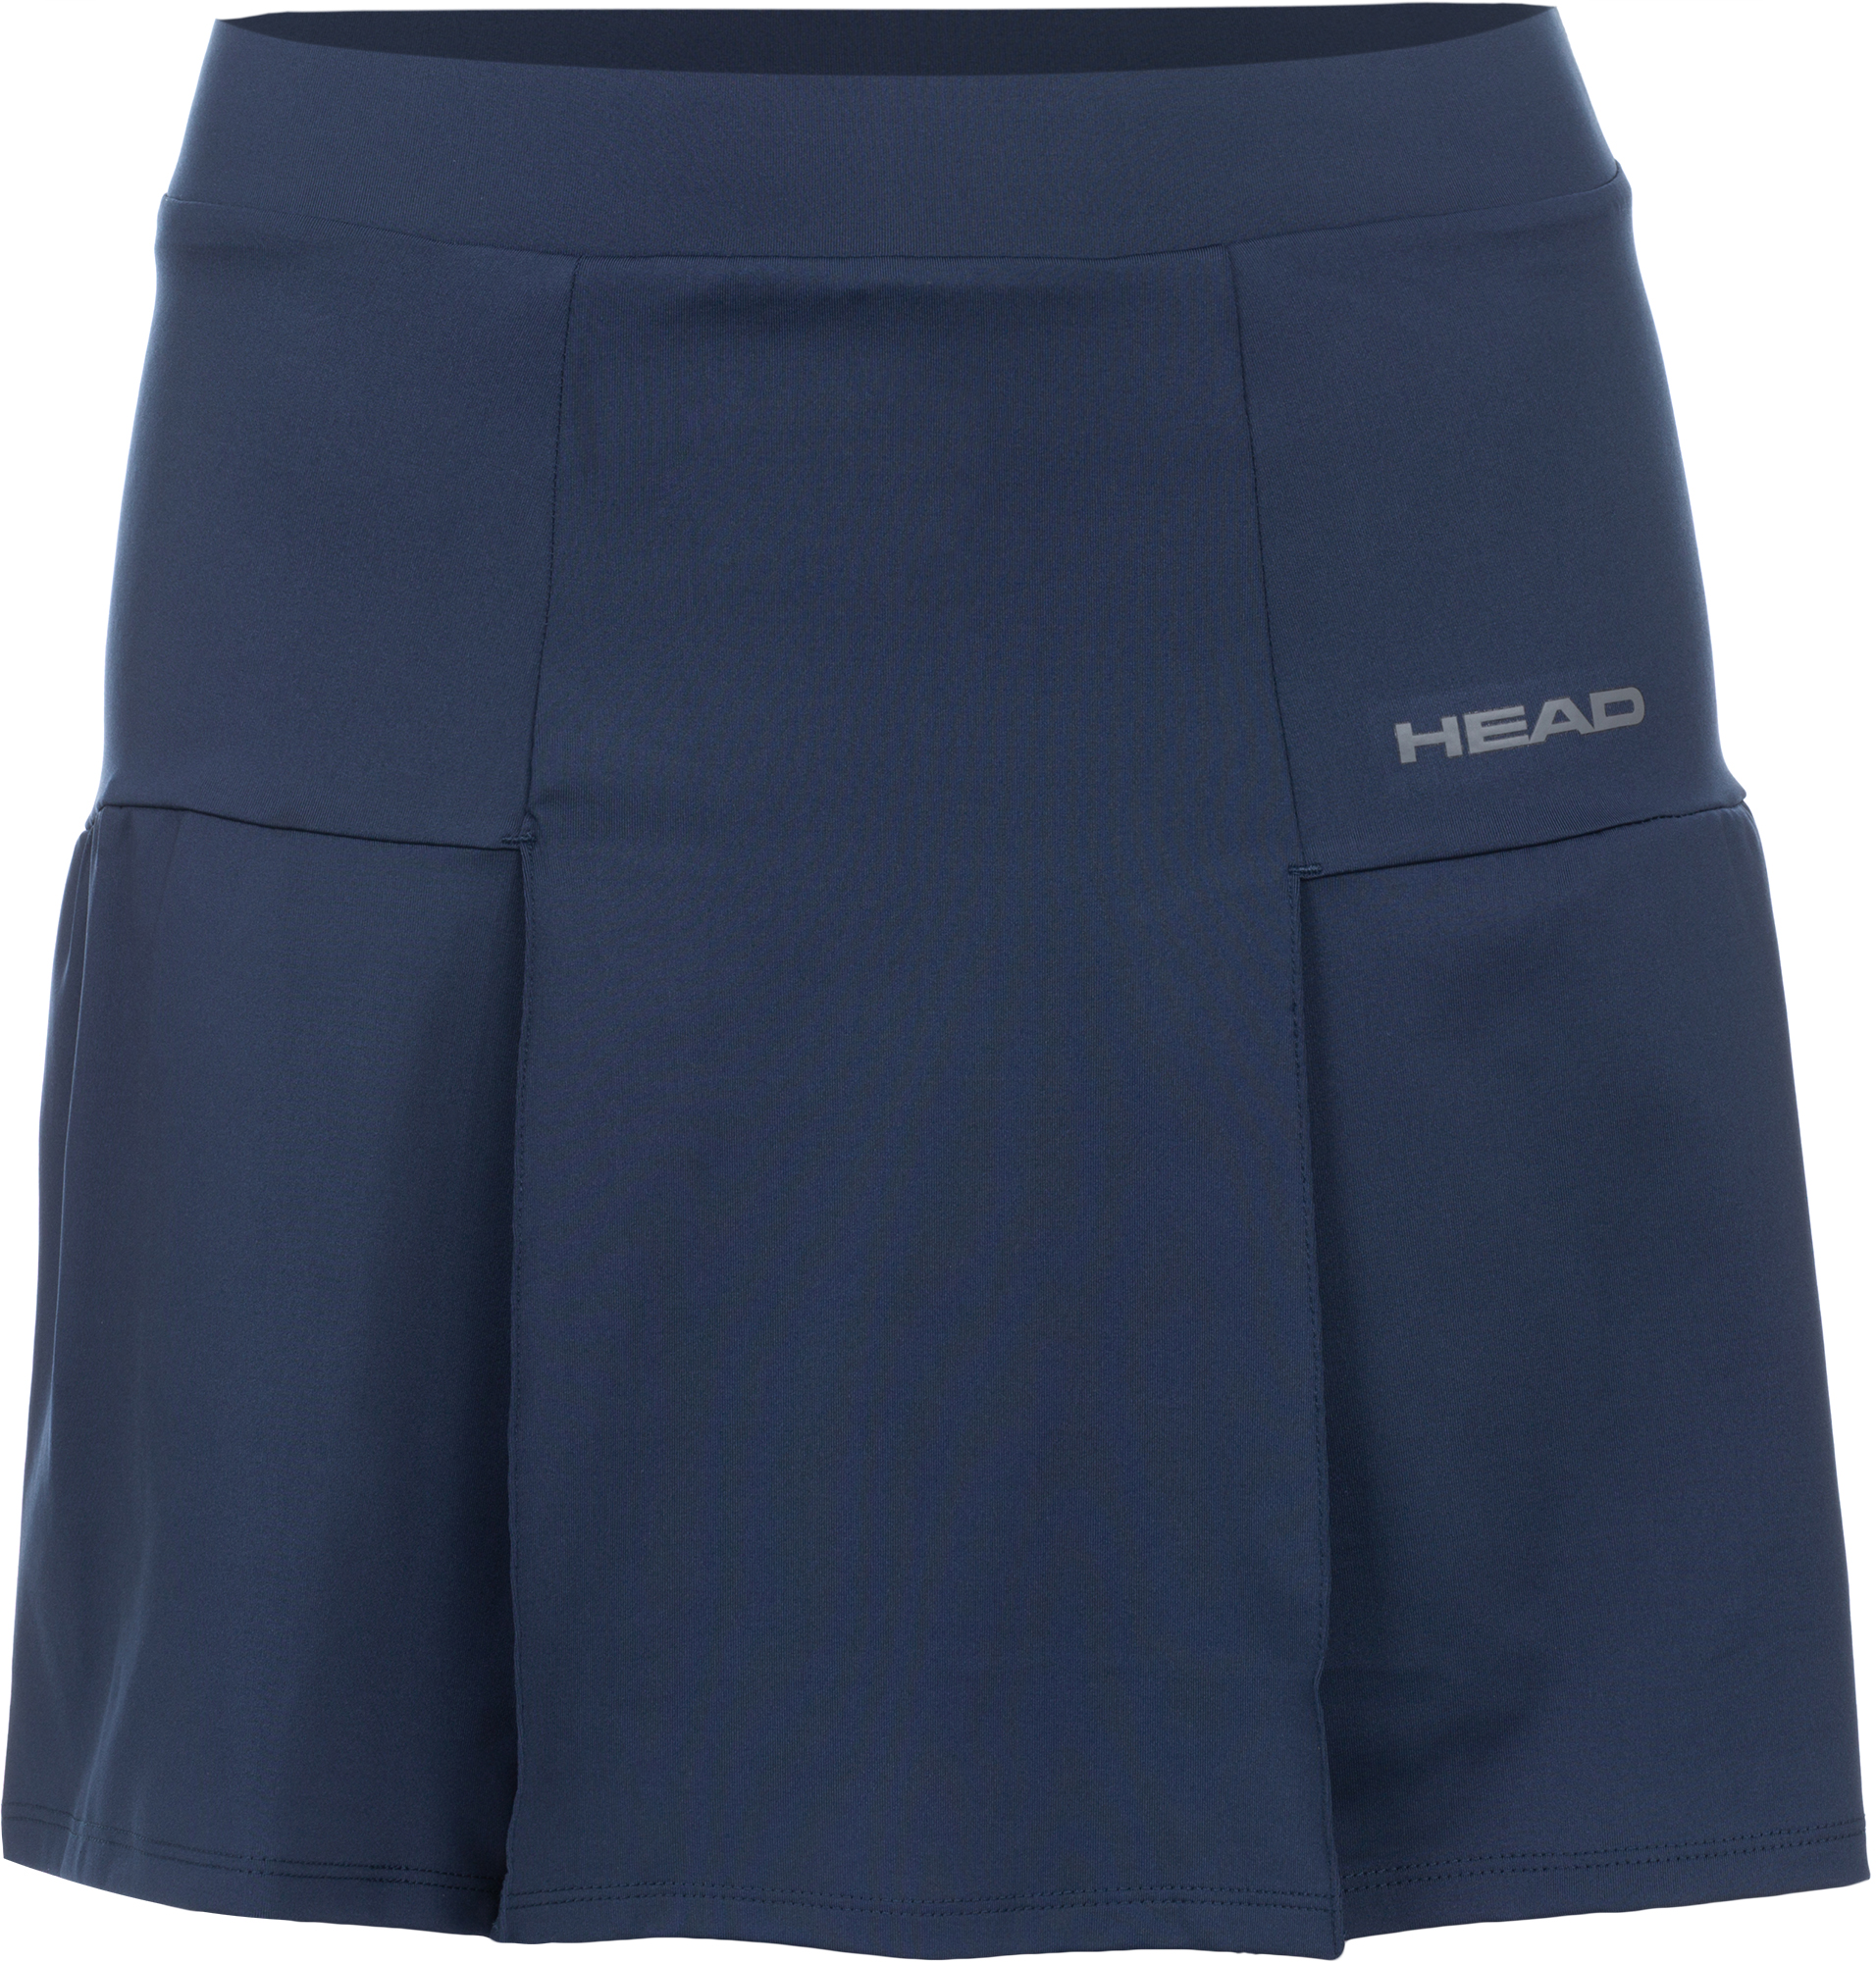 купить Head Юбка женская Head Club Basic Skort Long, размер 42-44